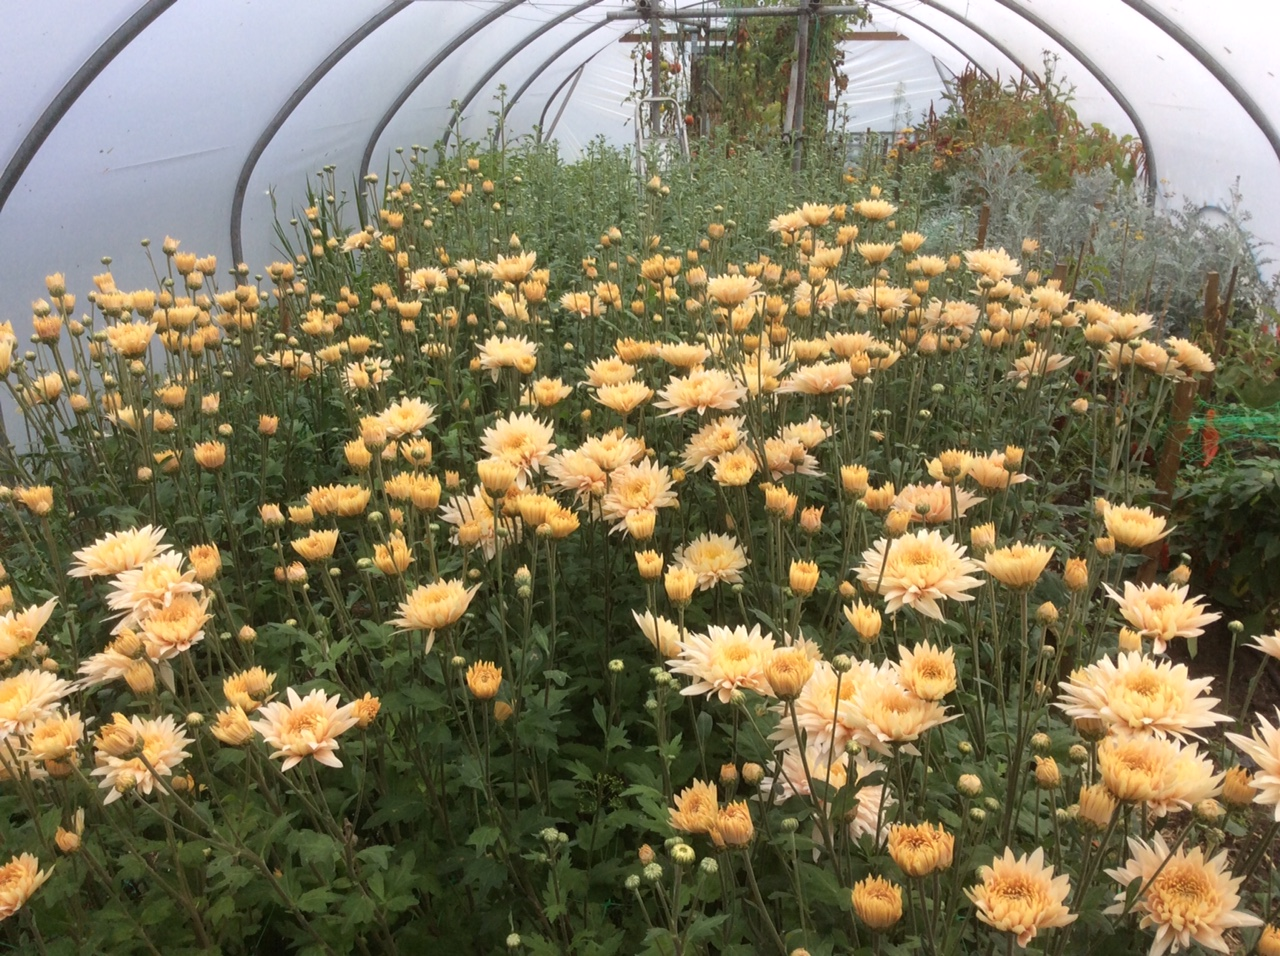 One of Carol's poly tunnels with Chrysanthemums waiting to be cut